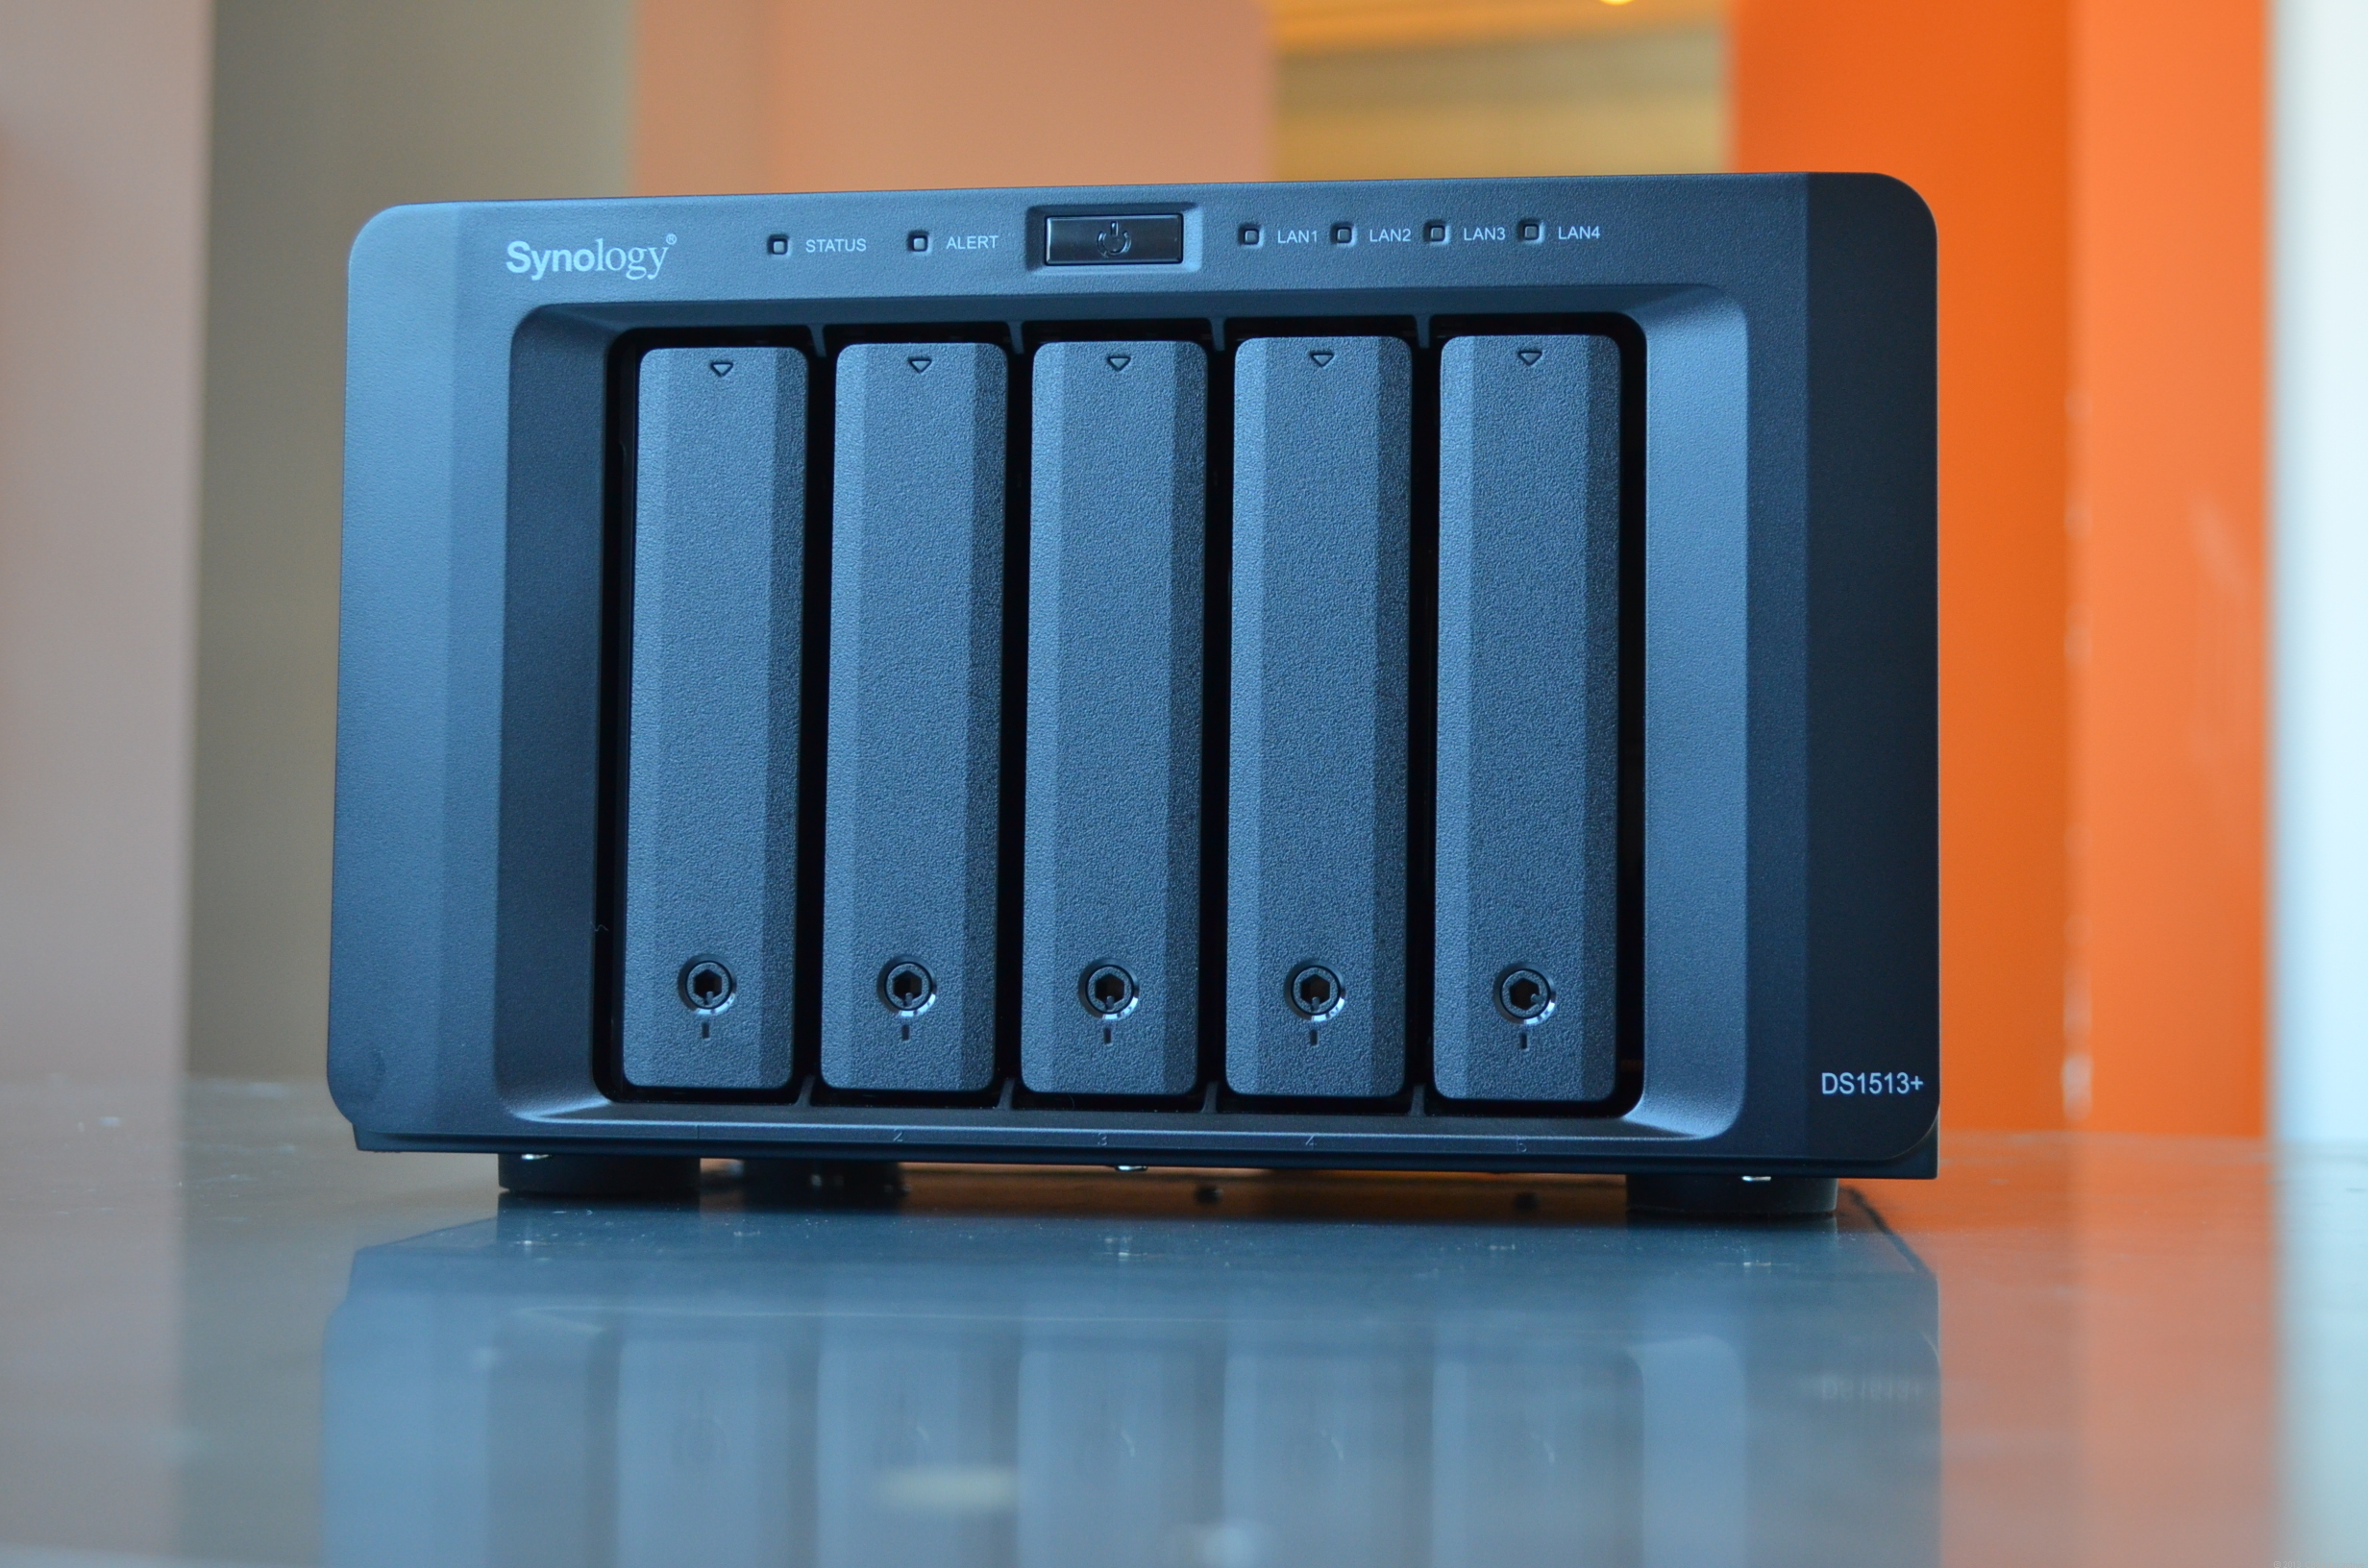 The DiskStation DS1513+ has five front-facing drive bays, each of which can handle a standard hard drive of up to 4TB.